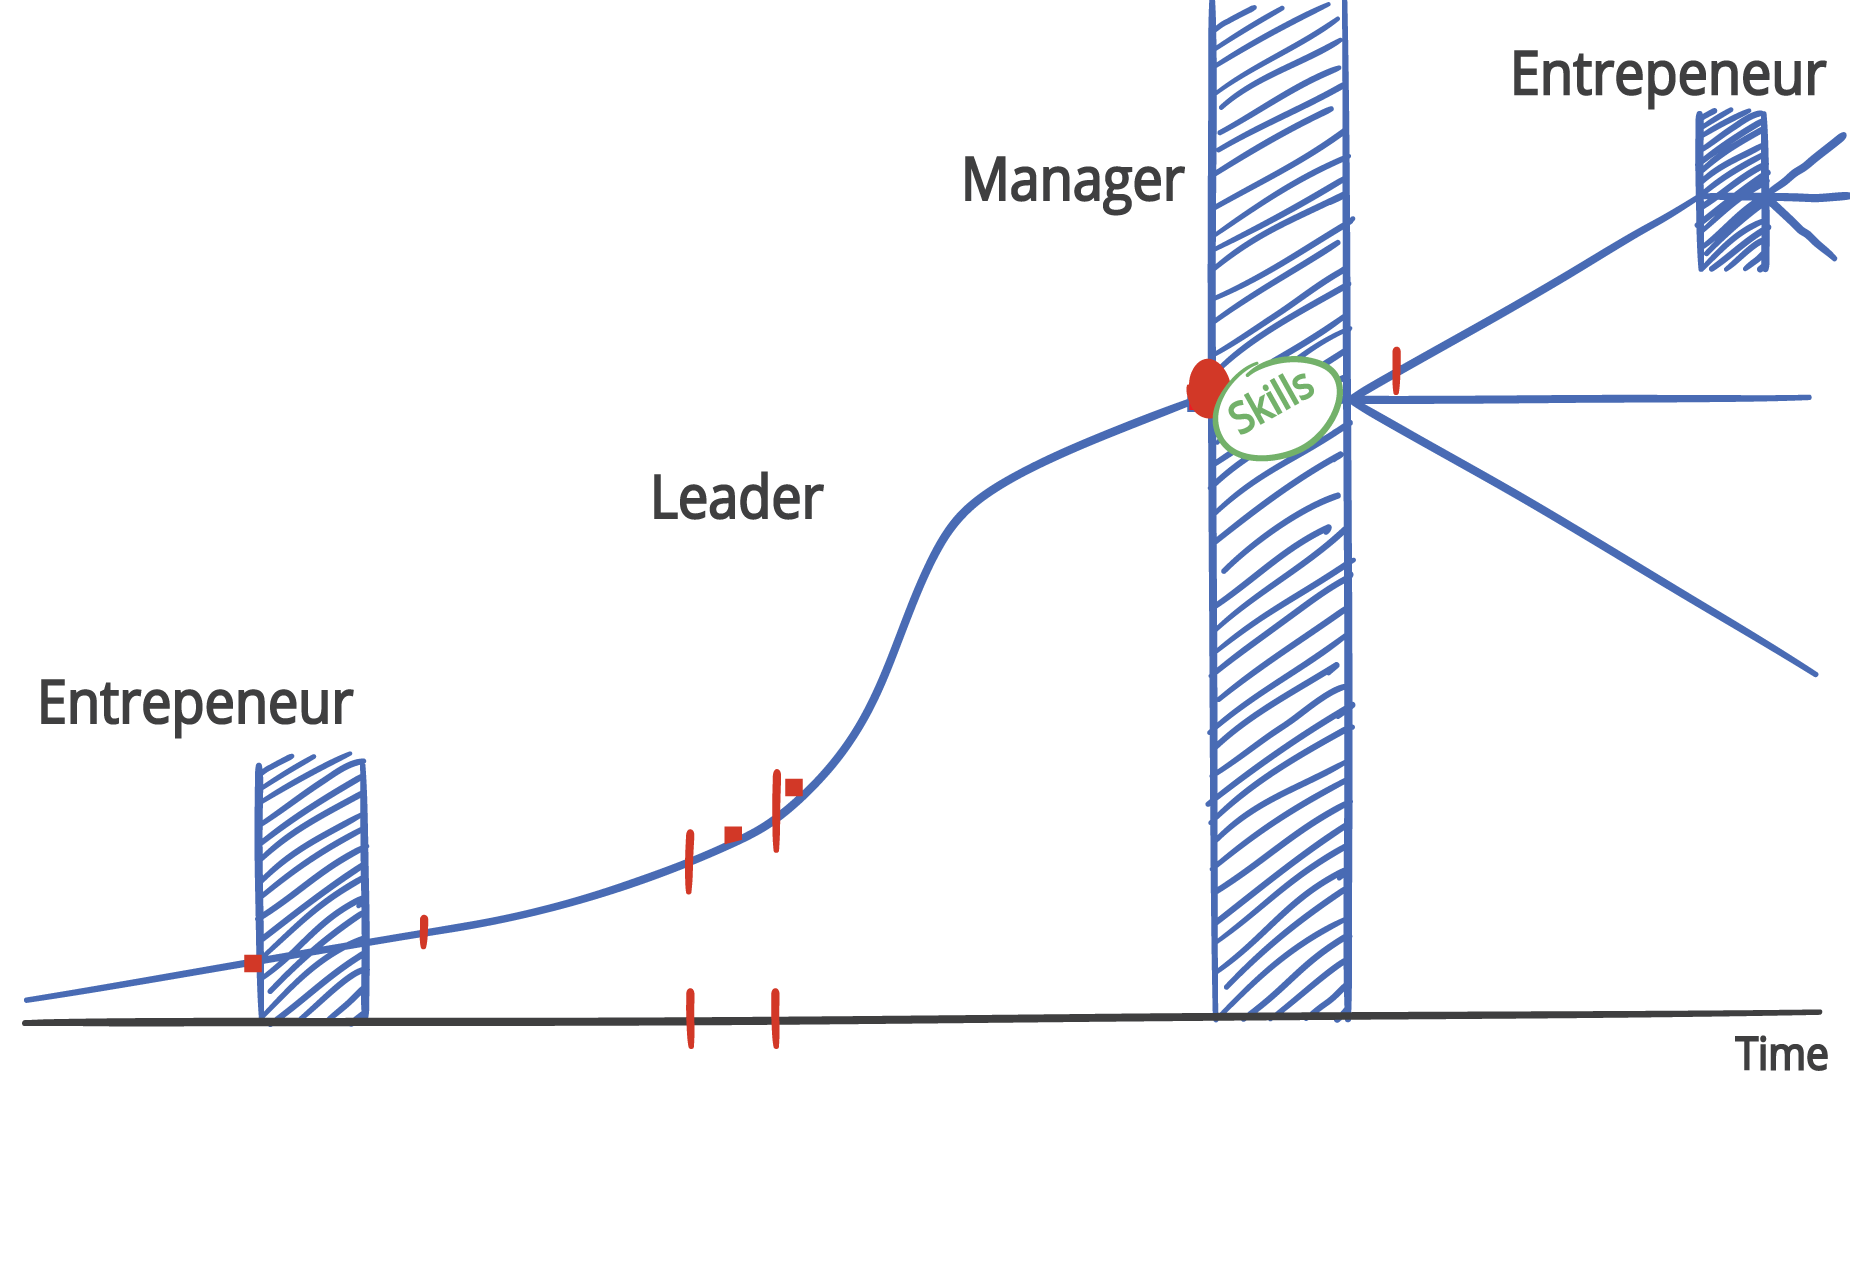 Business Cycle Graph showing entrepreneur, leader and manager along the growth over time line